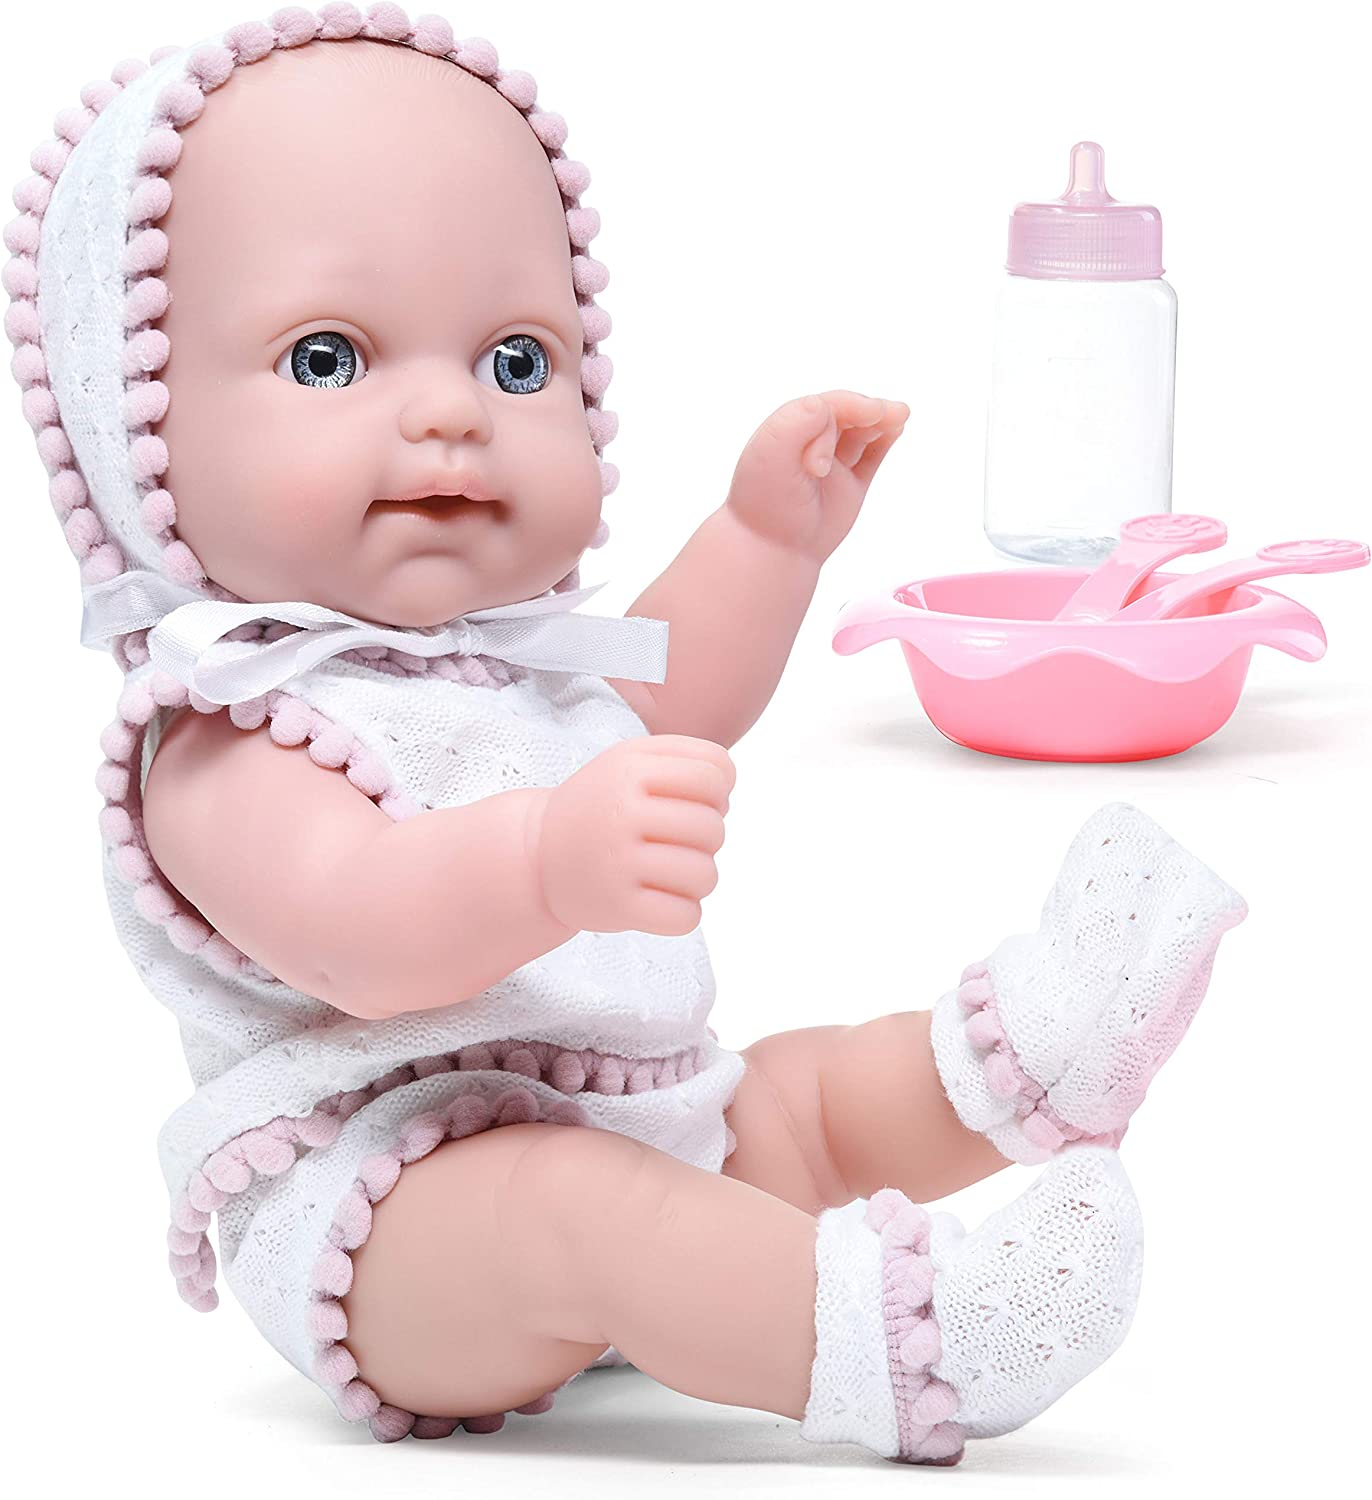 Litti Pritti Baby Dolls Set 10 Piece Realistic with Bottle, Baby Dolls Feeding Set & Outfit, Baby Dolls for 2 Year Old Girls and up Makes a Great Gift